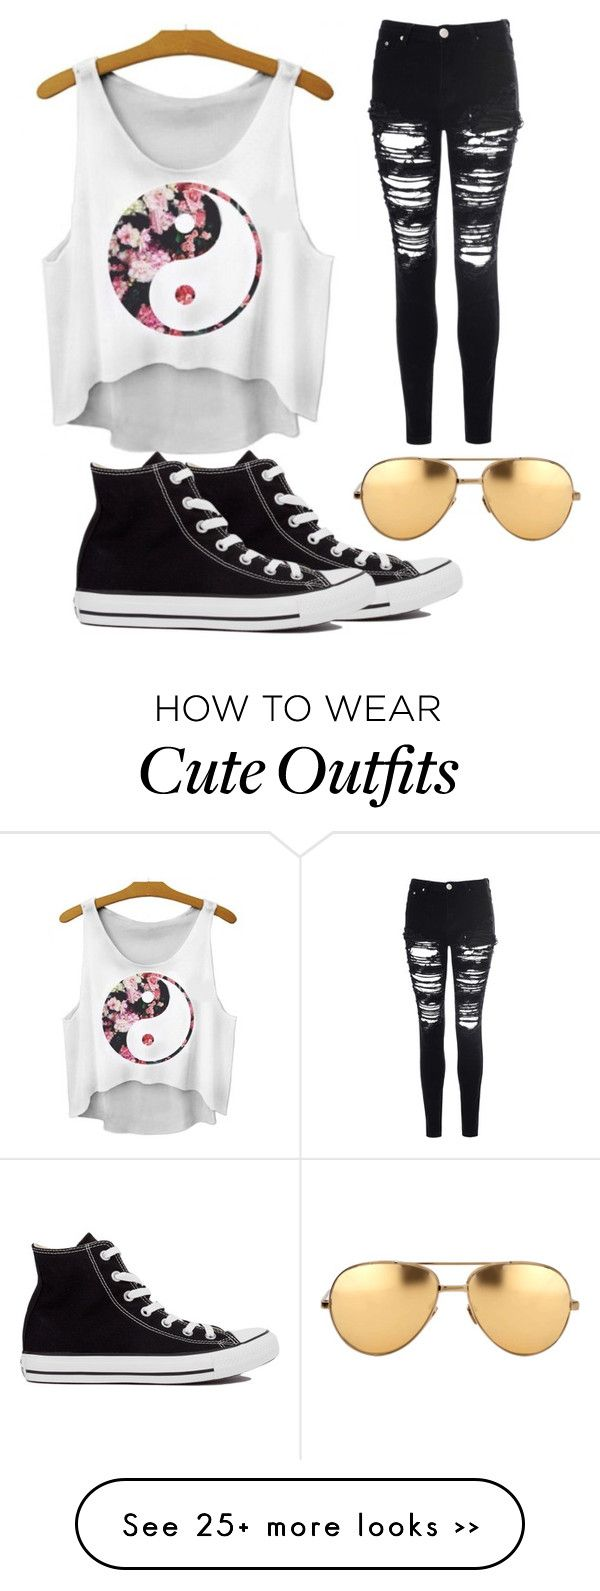 """The Cute Outfit"" by vanland on Polyvore"